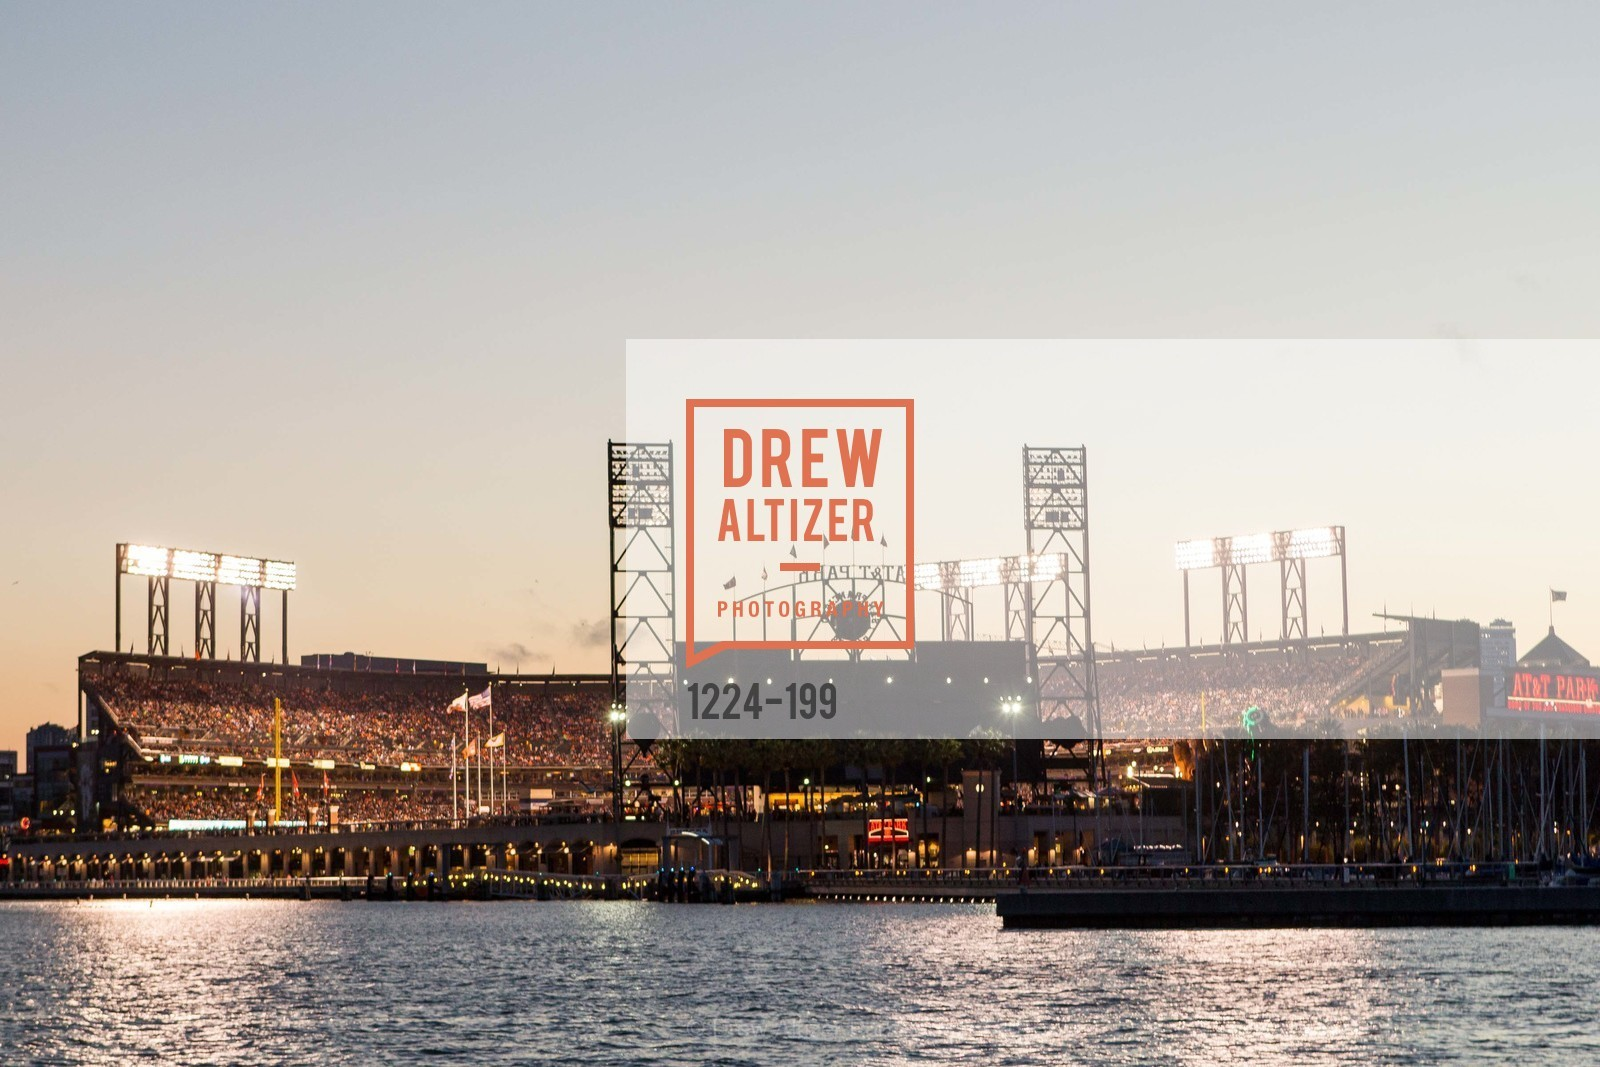 atmosphere, Practice Fusion Boat Cruise, July 10th, 2015, Photo,Drew Altizer, Drew Altizer Photography, full-service event agency, private events, San Francisco photographer, photographer California